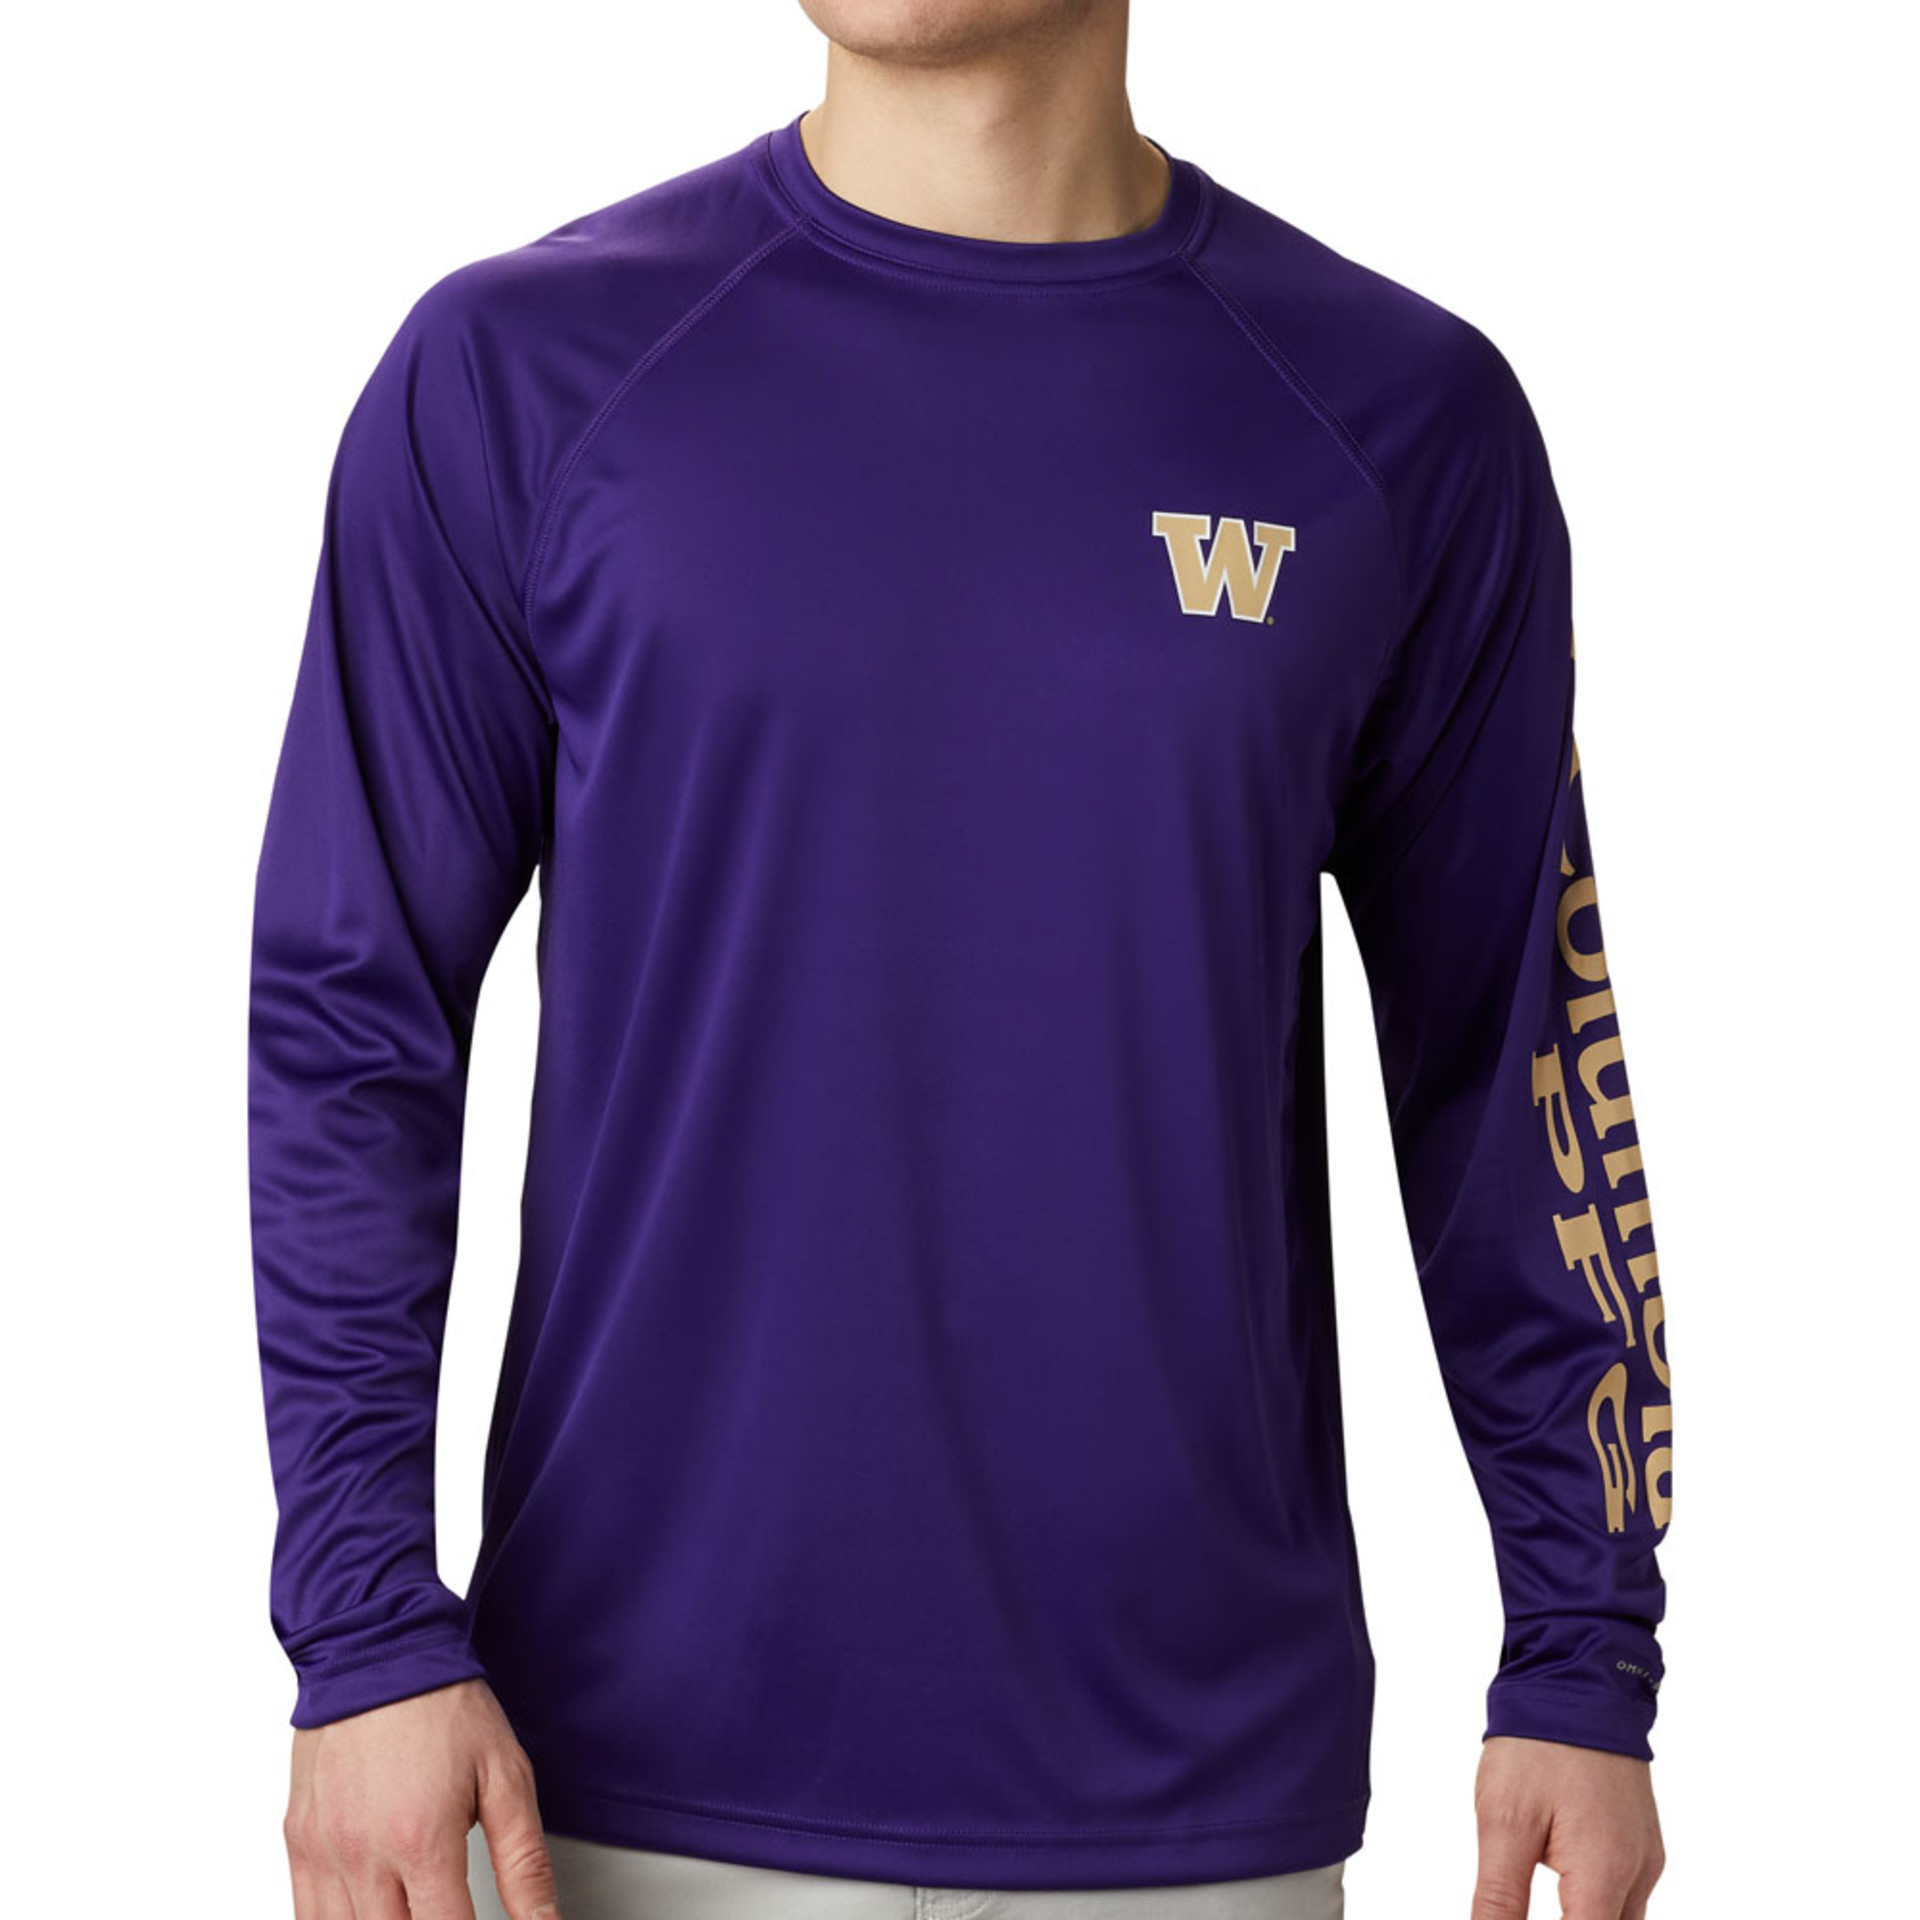 Columbia Men's W Terminal Tackle Long Sleeved Tee – Purple